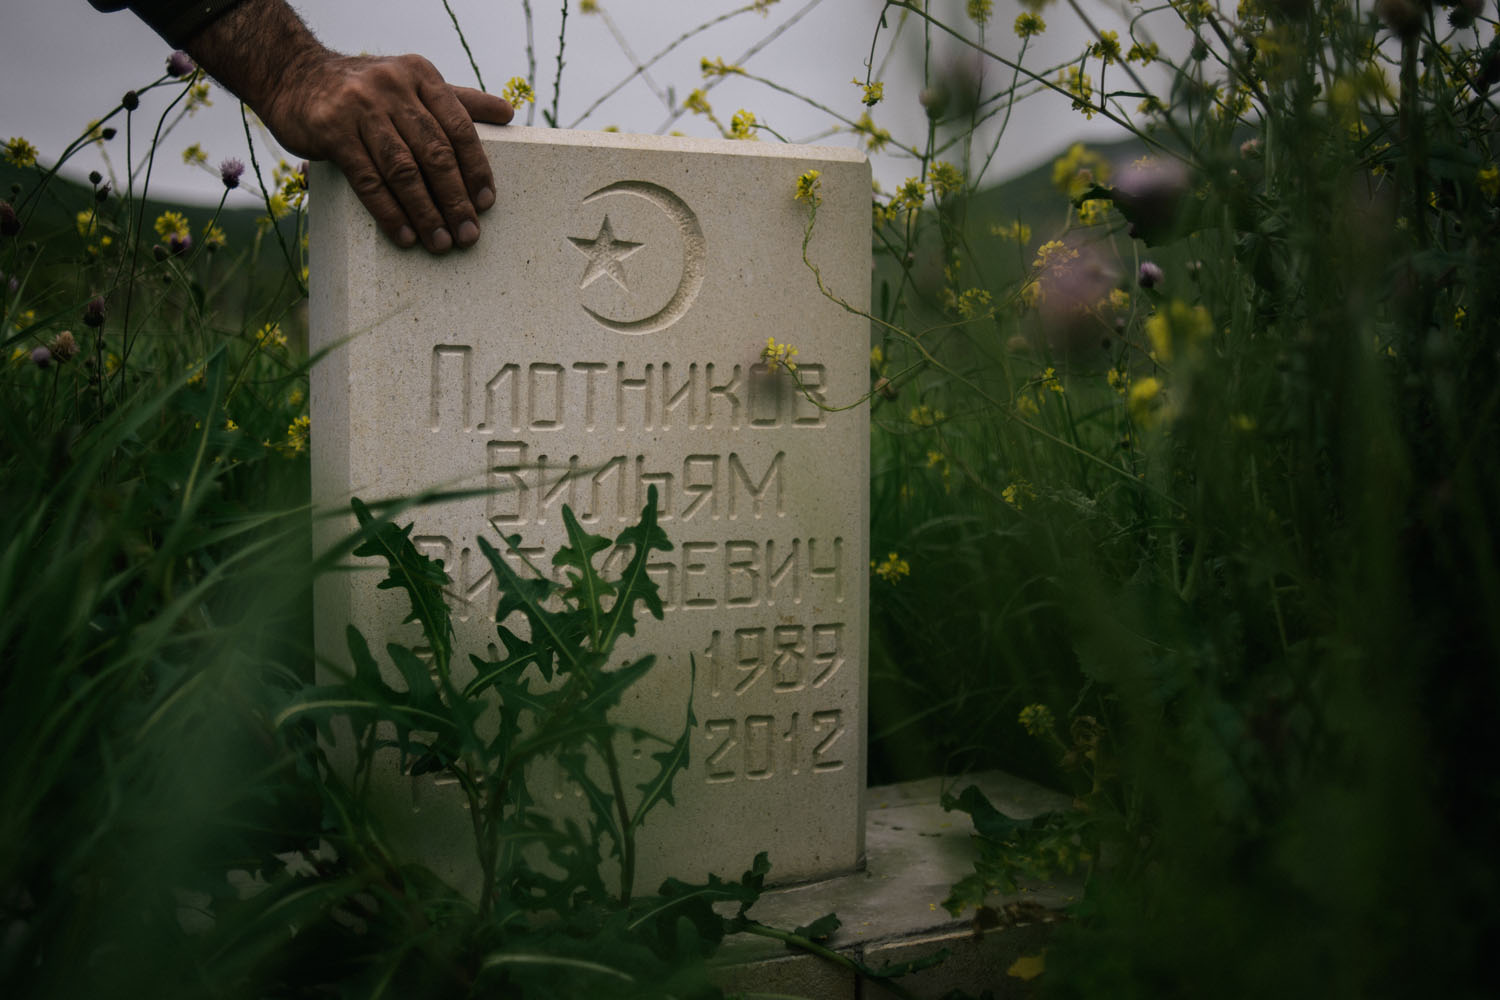 The grave of William Plotnikov, who was killed in a shootout with Russian counterterrorism forces in July 2012.